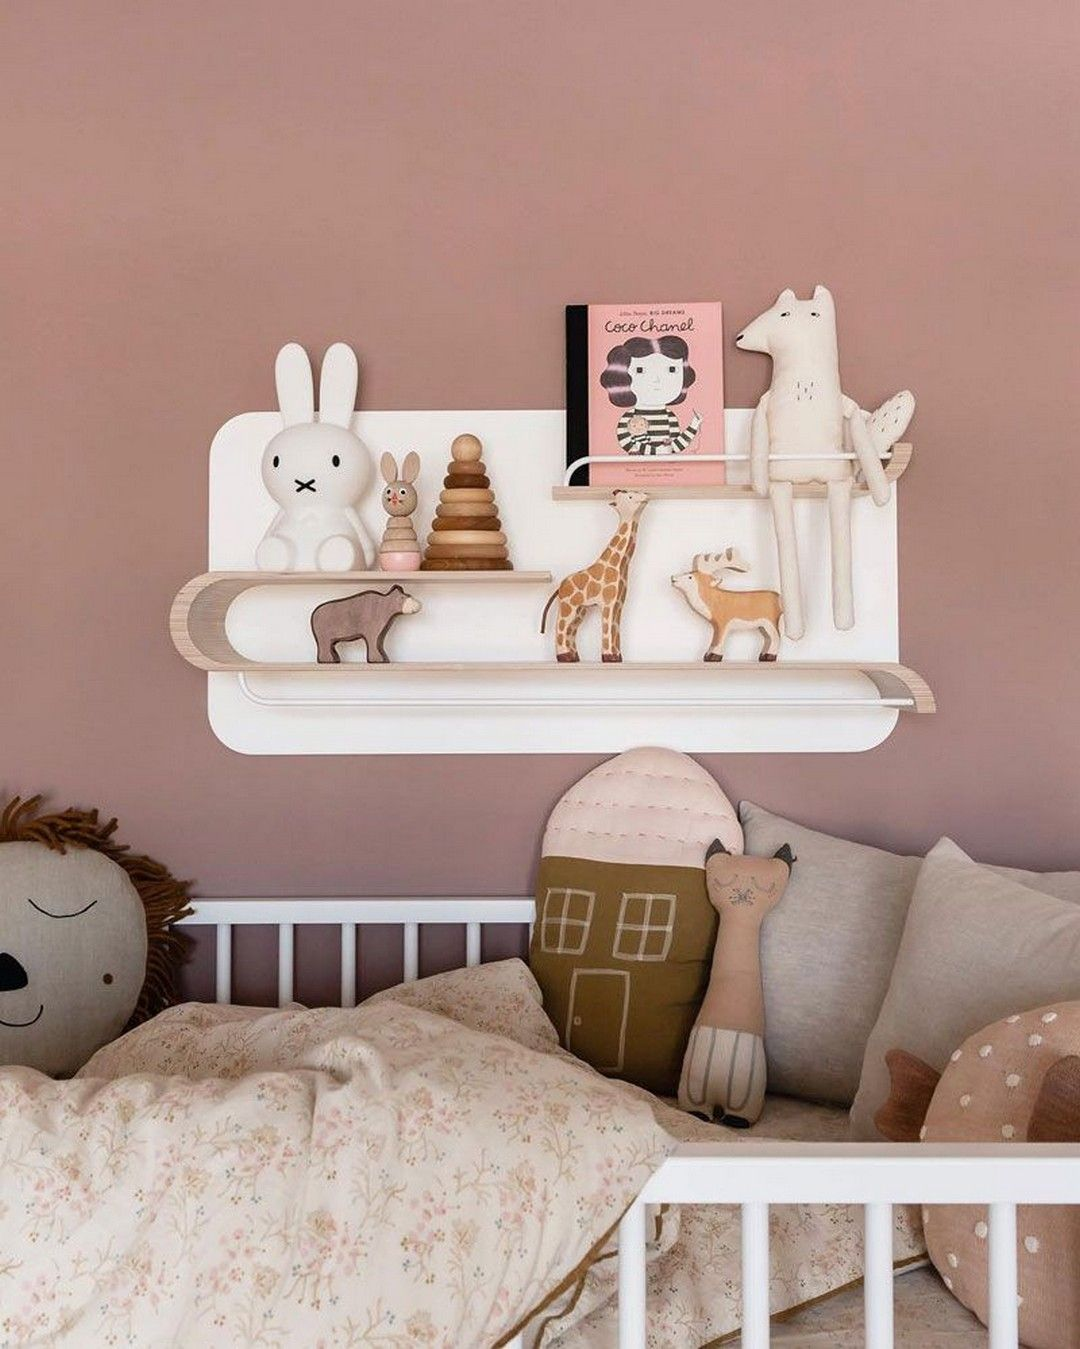 37 Trends in Decorating Kids Rooms Allow To Create Amazing Designs